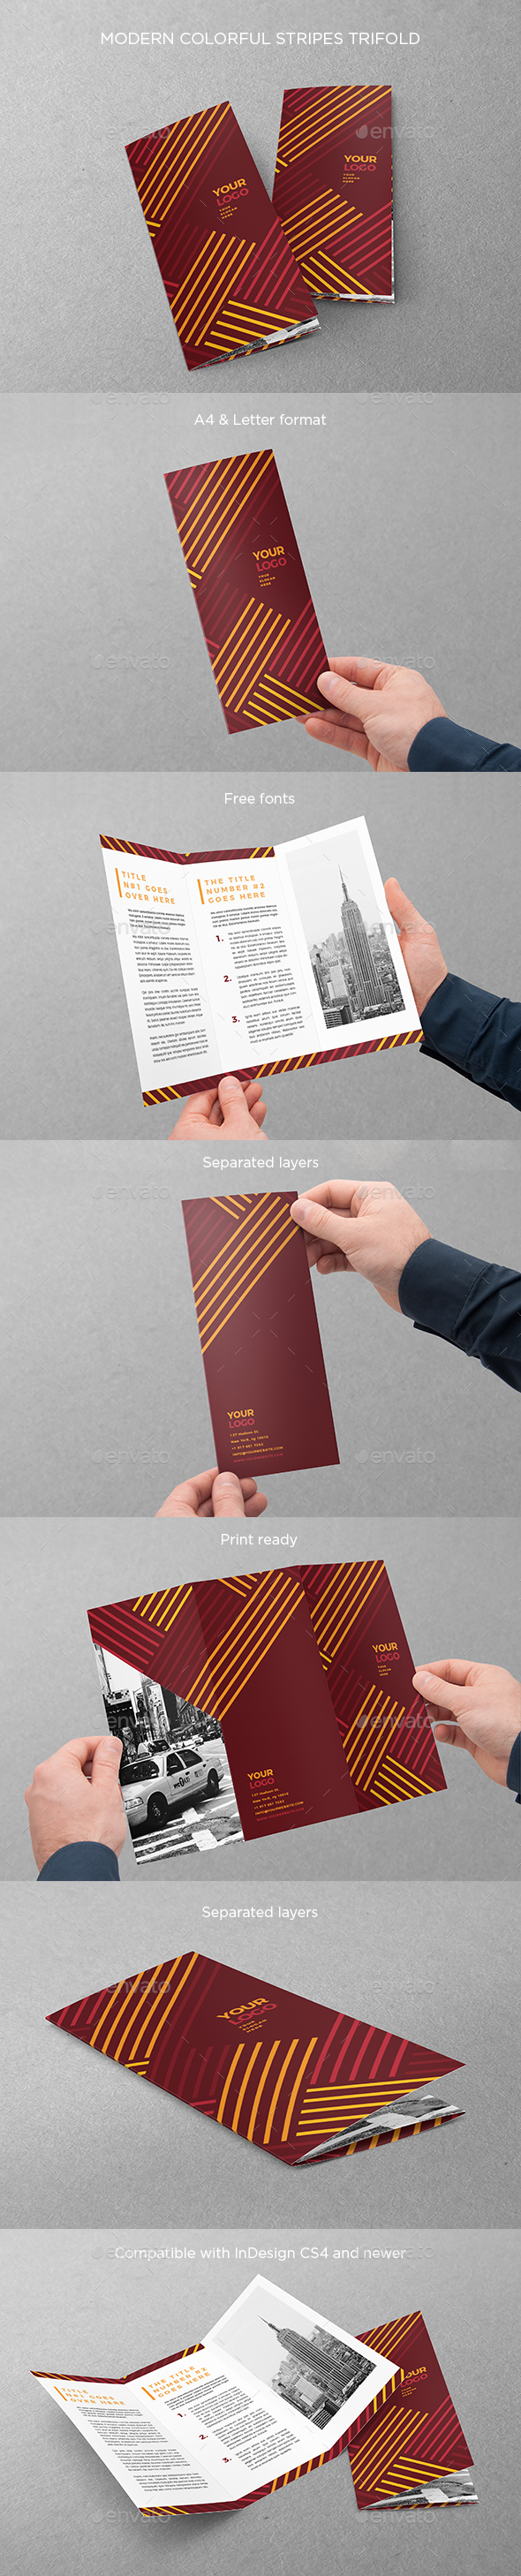 GraphicRiver Modern Colorful Stripes Trifold 20345294